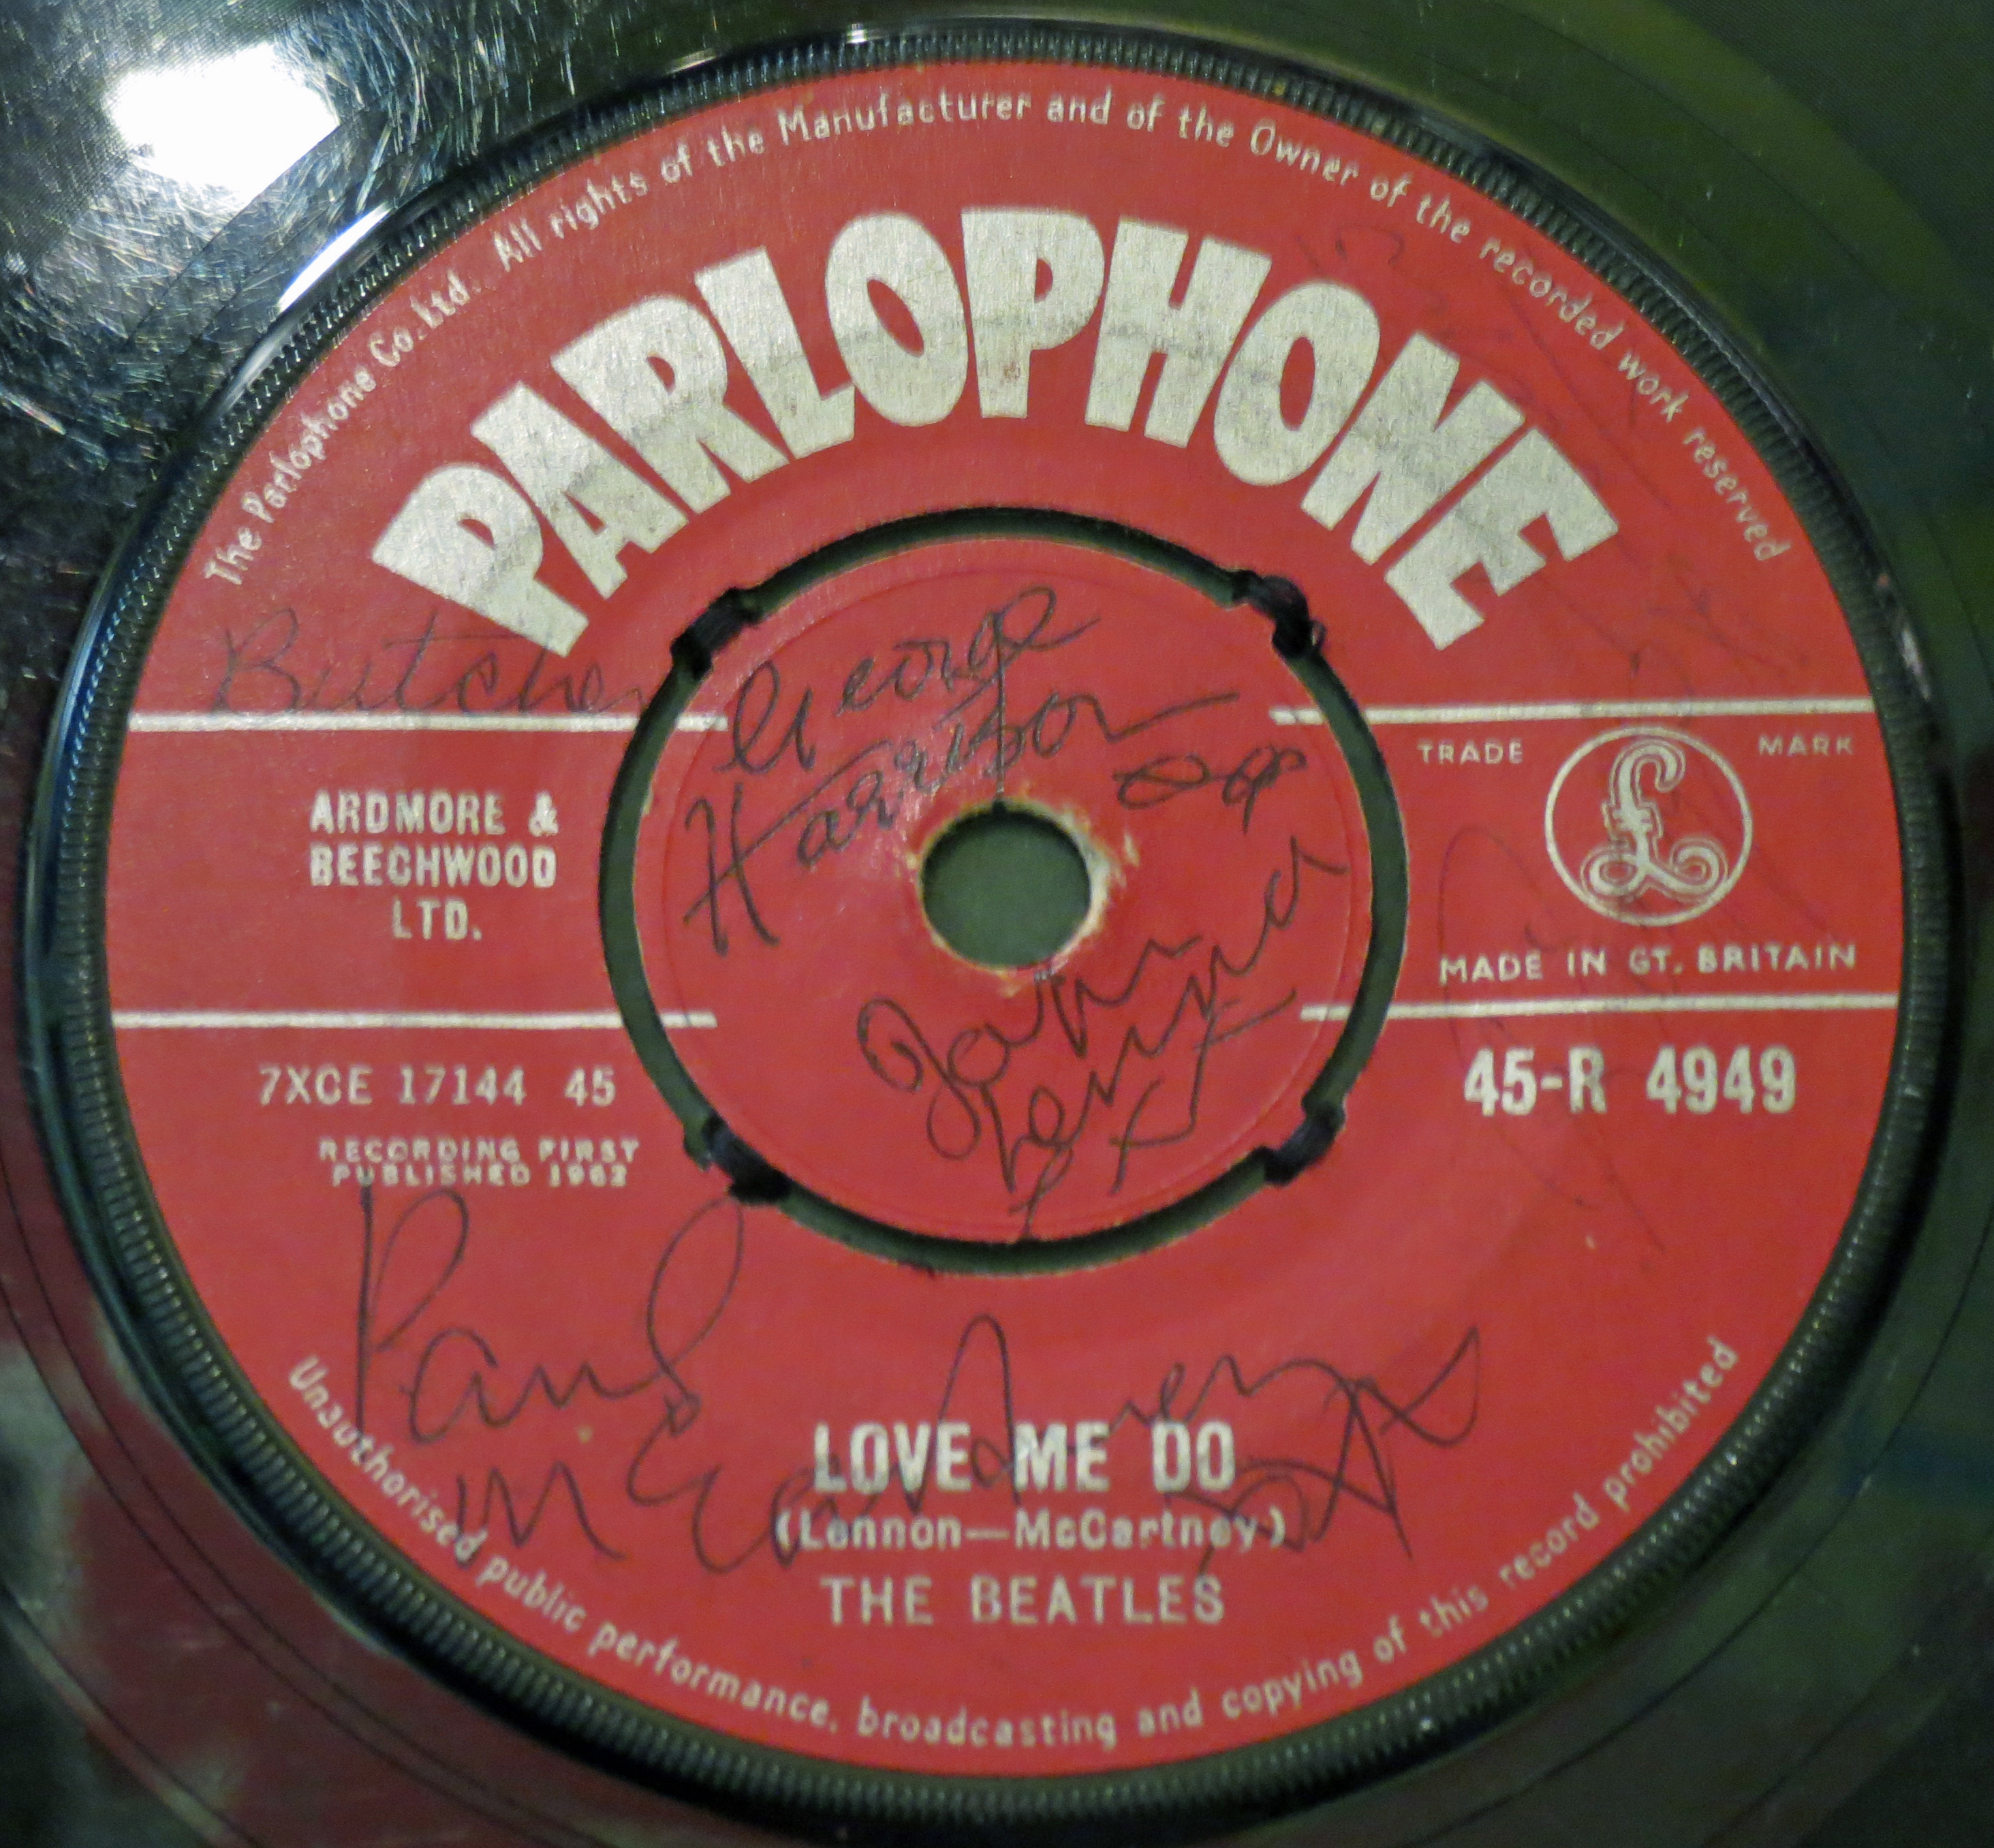 The Beatles Love Me Do single signed at Dawsons Record Shop, Widnes on 6th October 1962. The